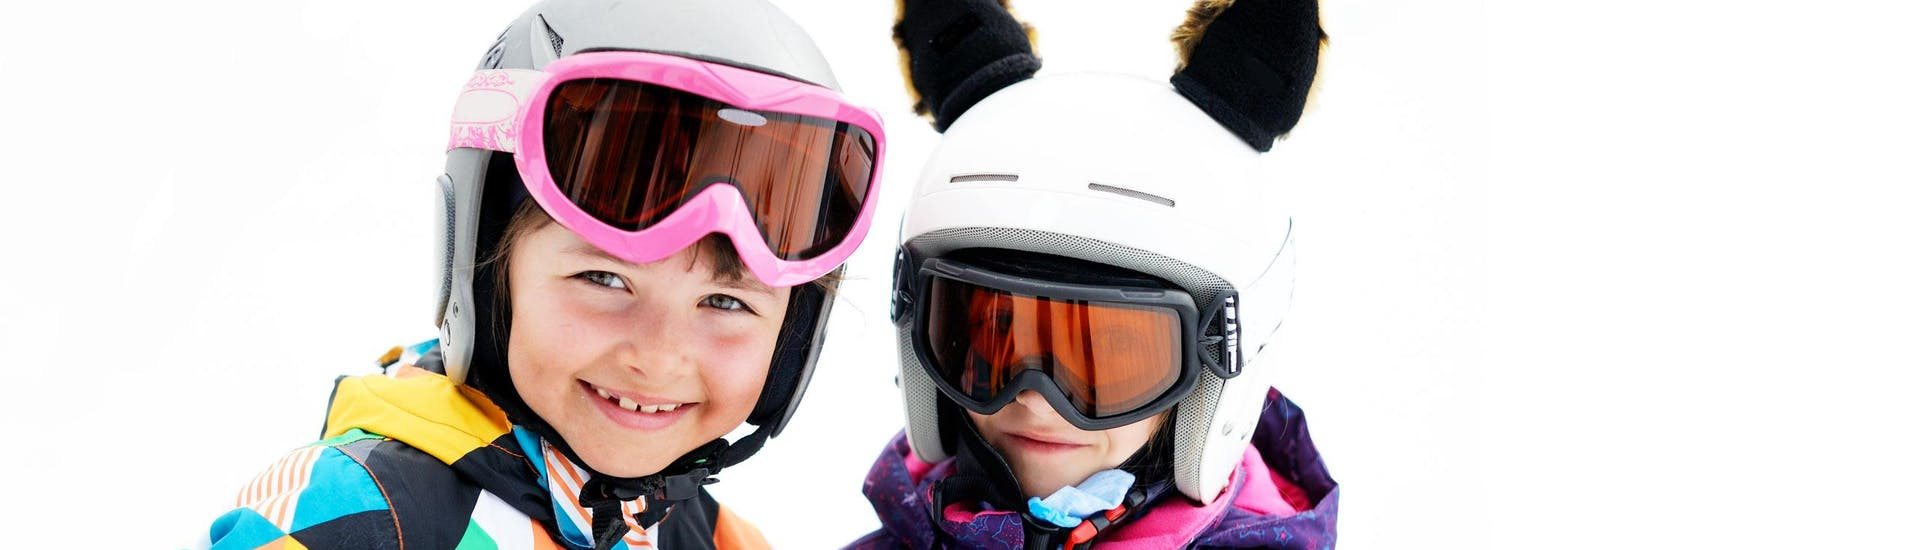 Two young children smiling at the camera during one of the Private Ski Lessons for Kids of All Levels organised by European Snowsport Zermatt.